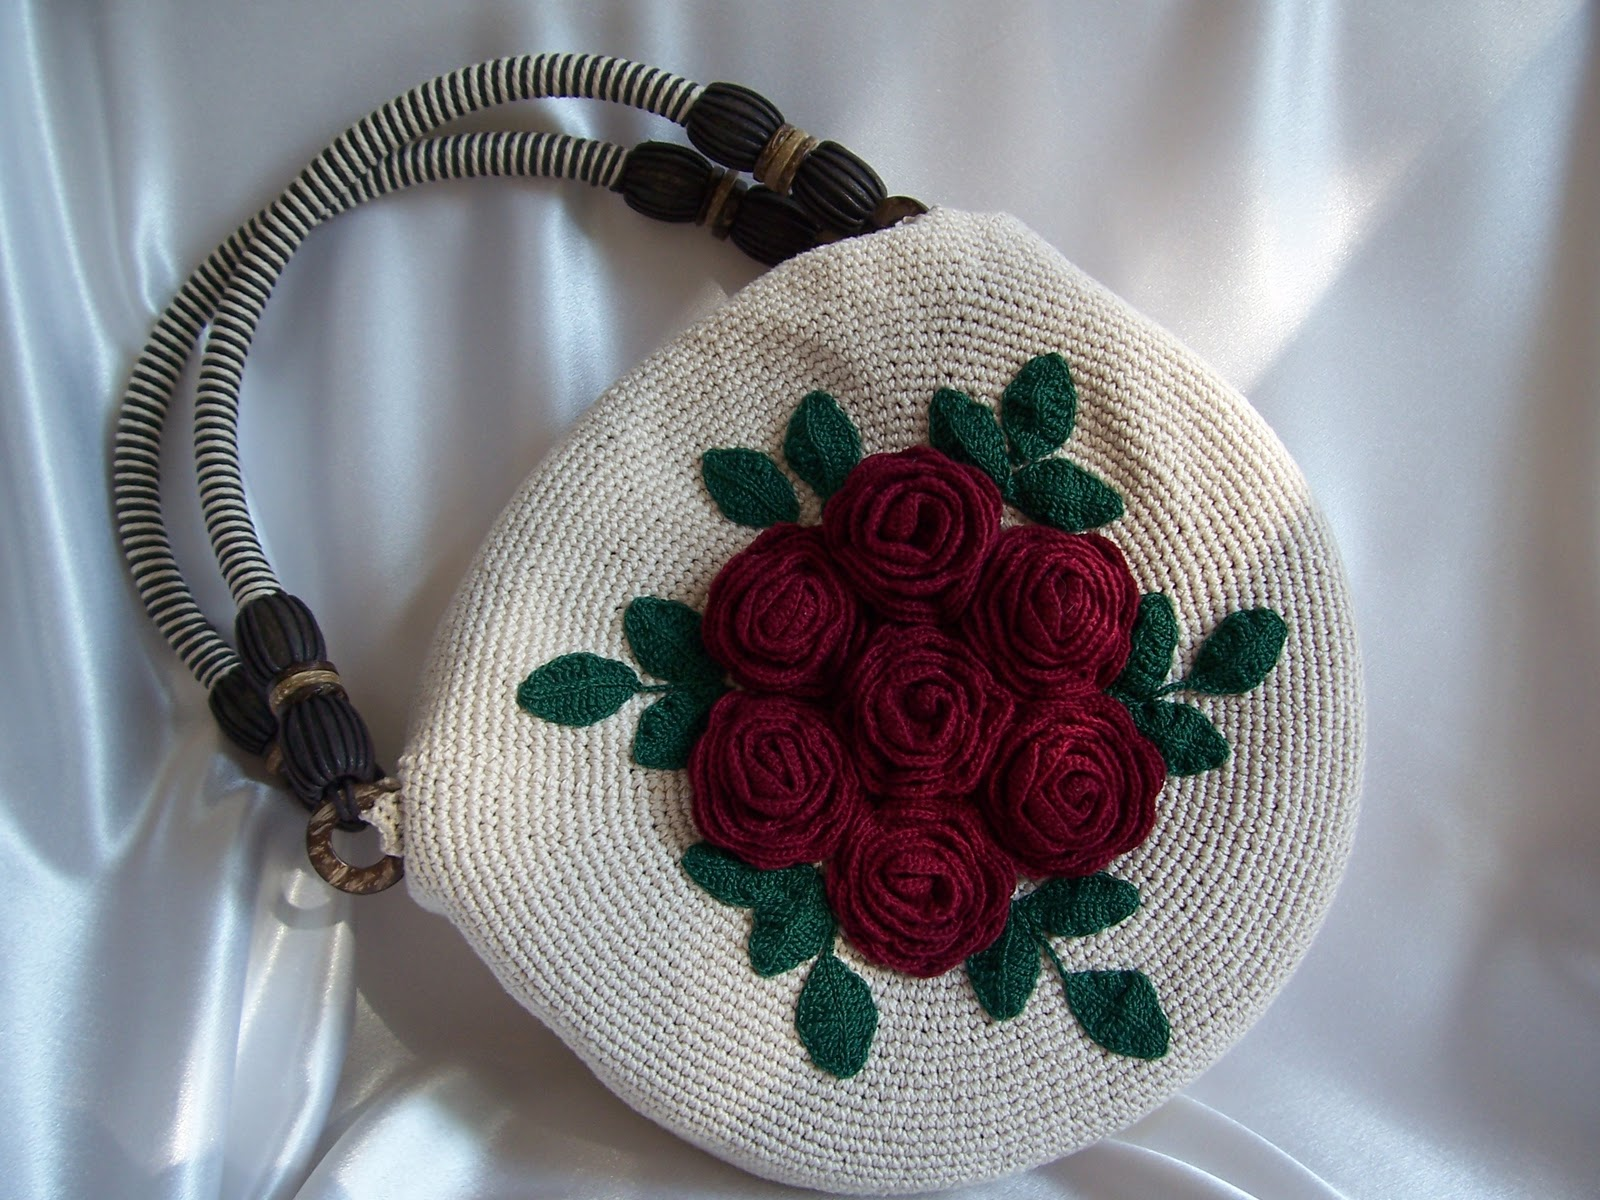 Crochet Bag Making : How to make a beautiful purse with flower decoration. Free pattern.